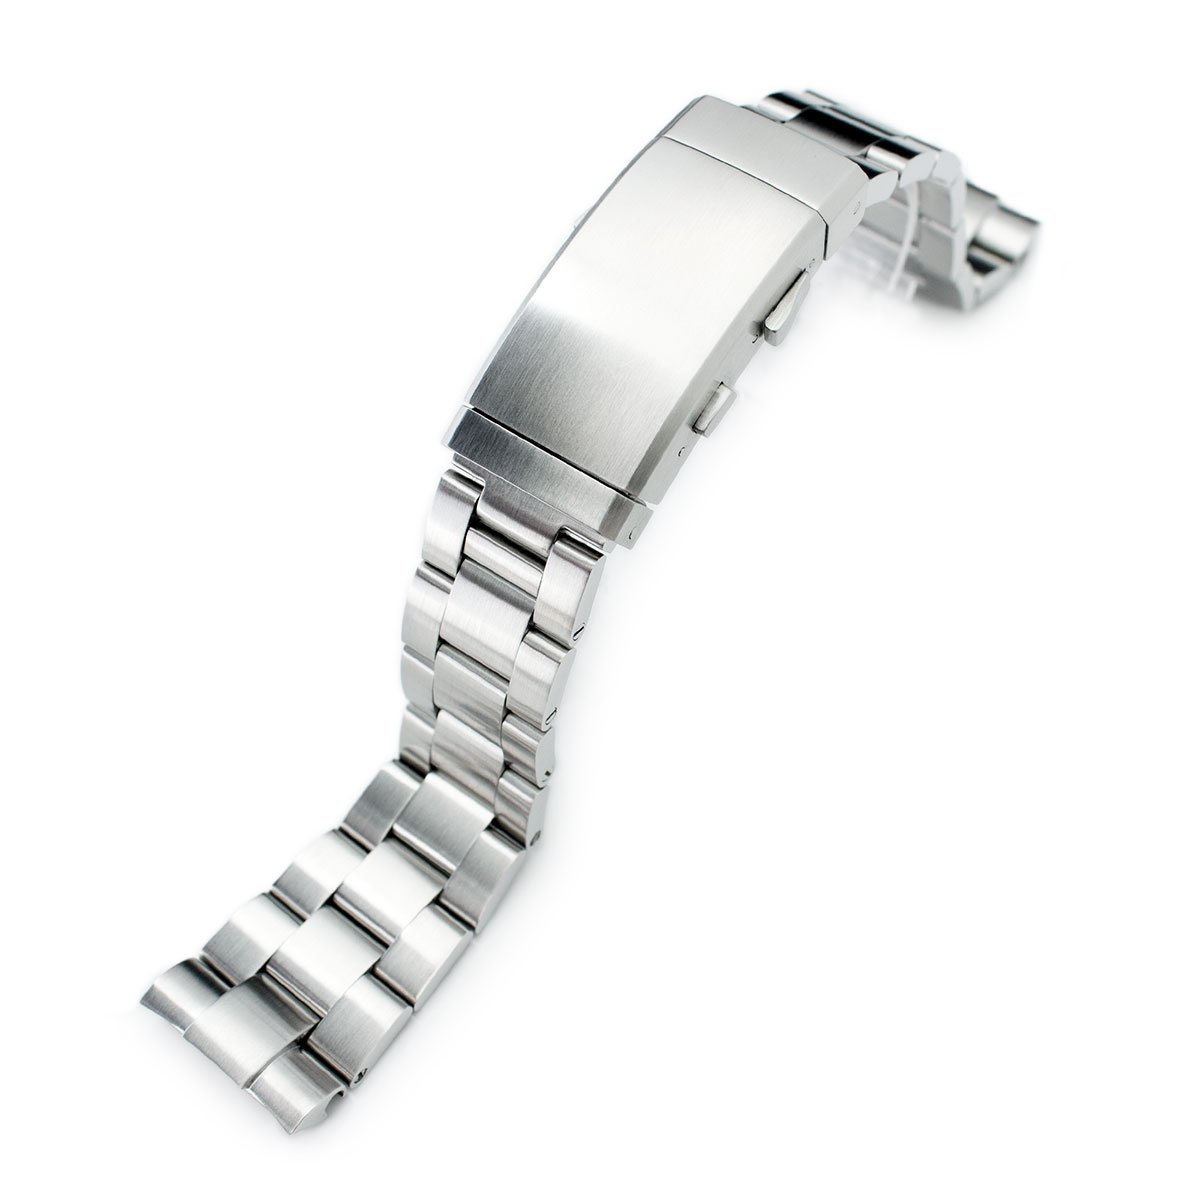 22mm Super Oyster Watch Bracelet for Seiko New Turtles SRP777 & PADI SRPA21 Ratchet Brushed